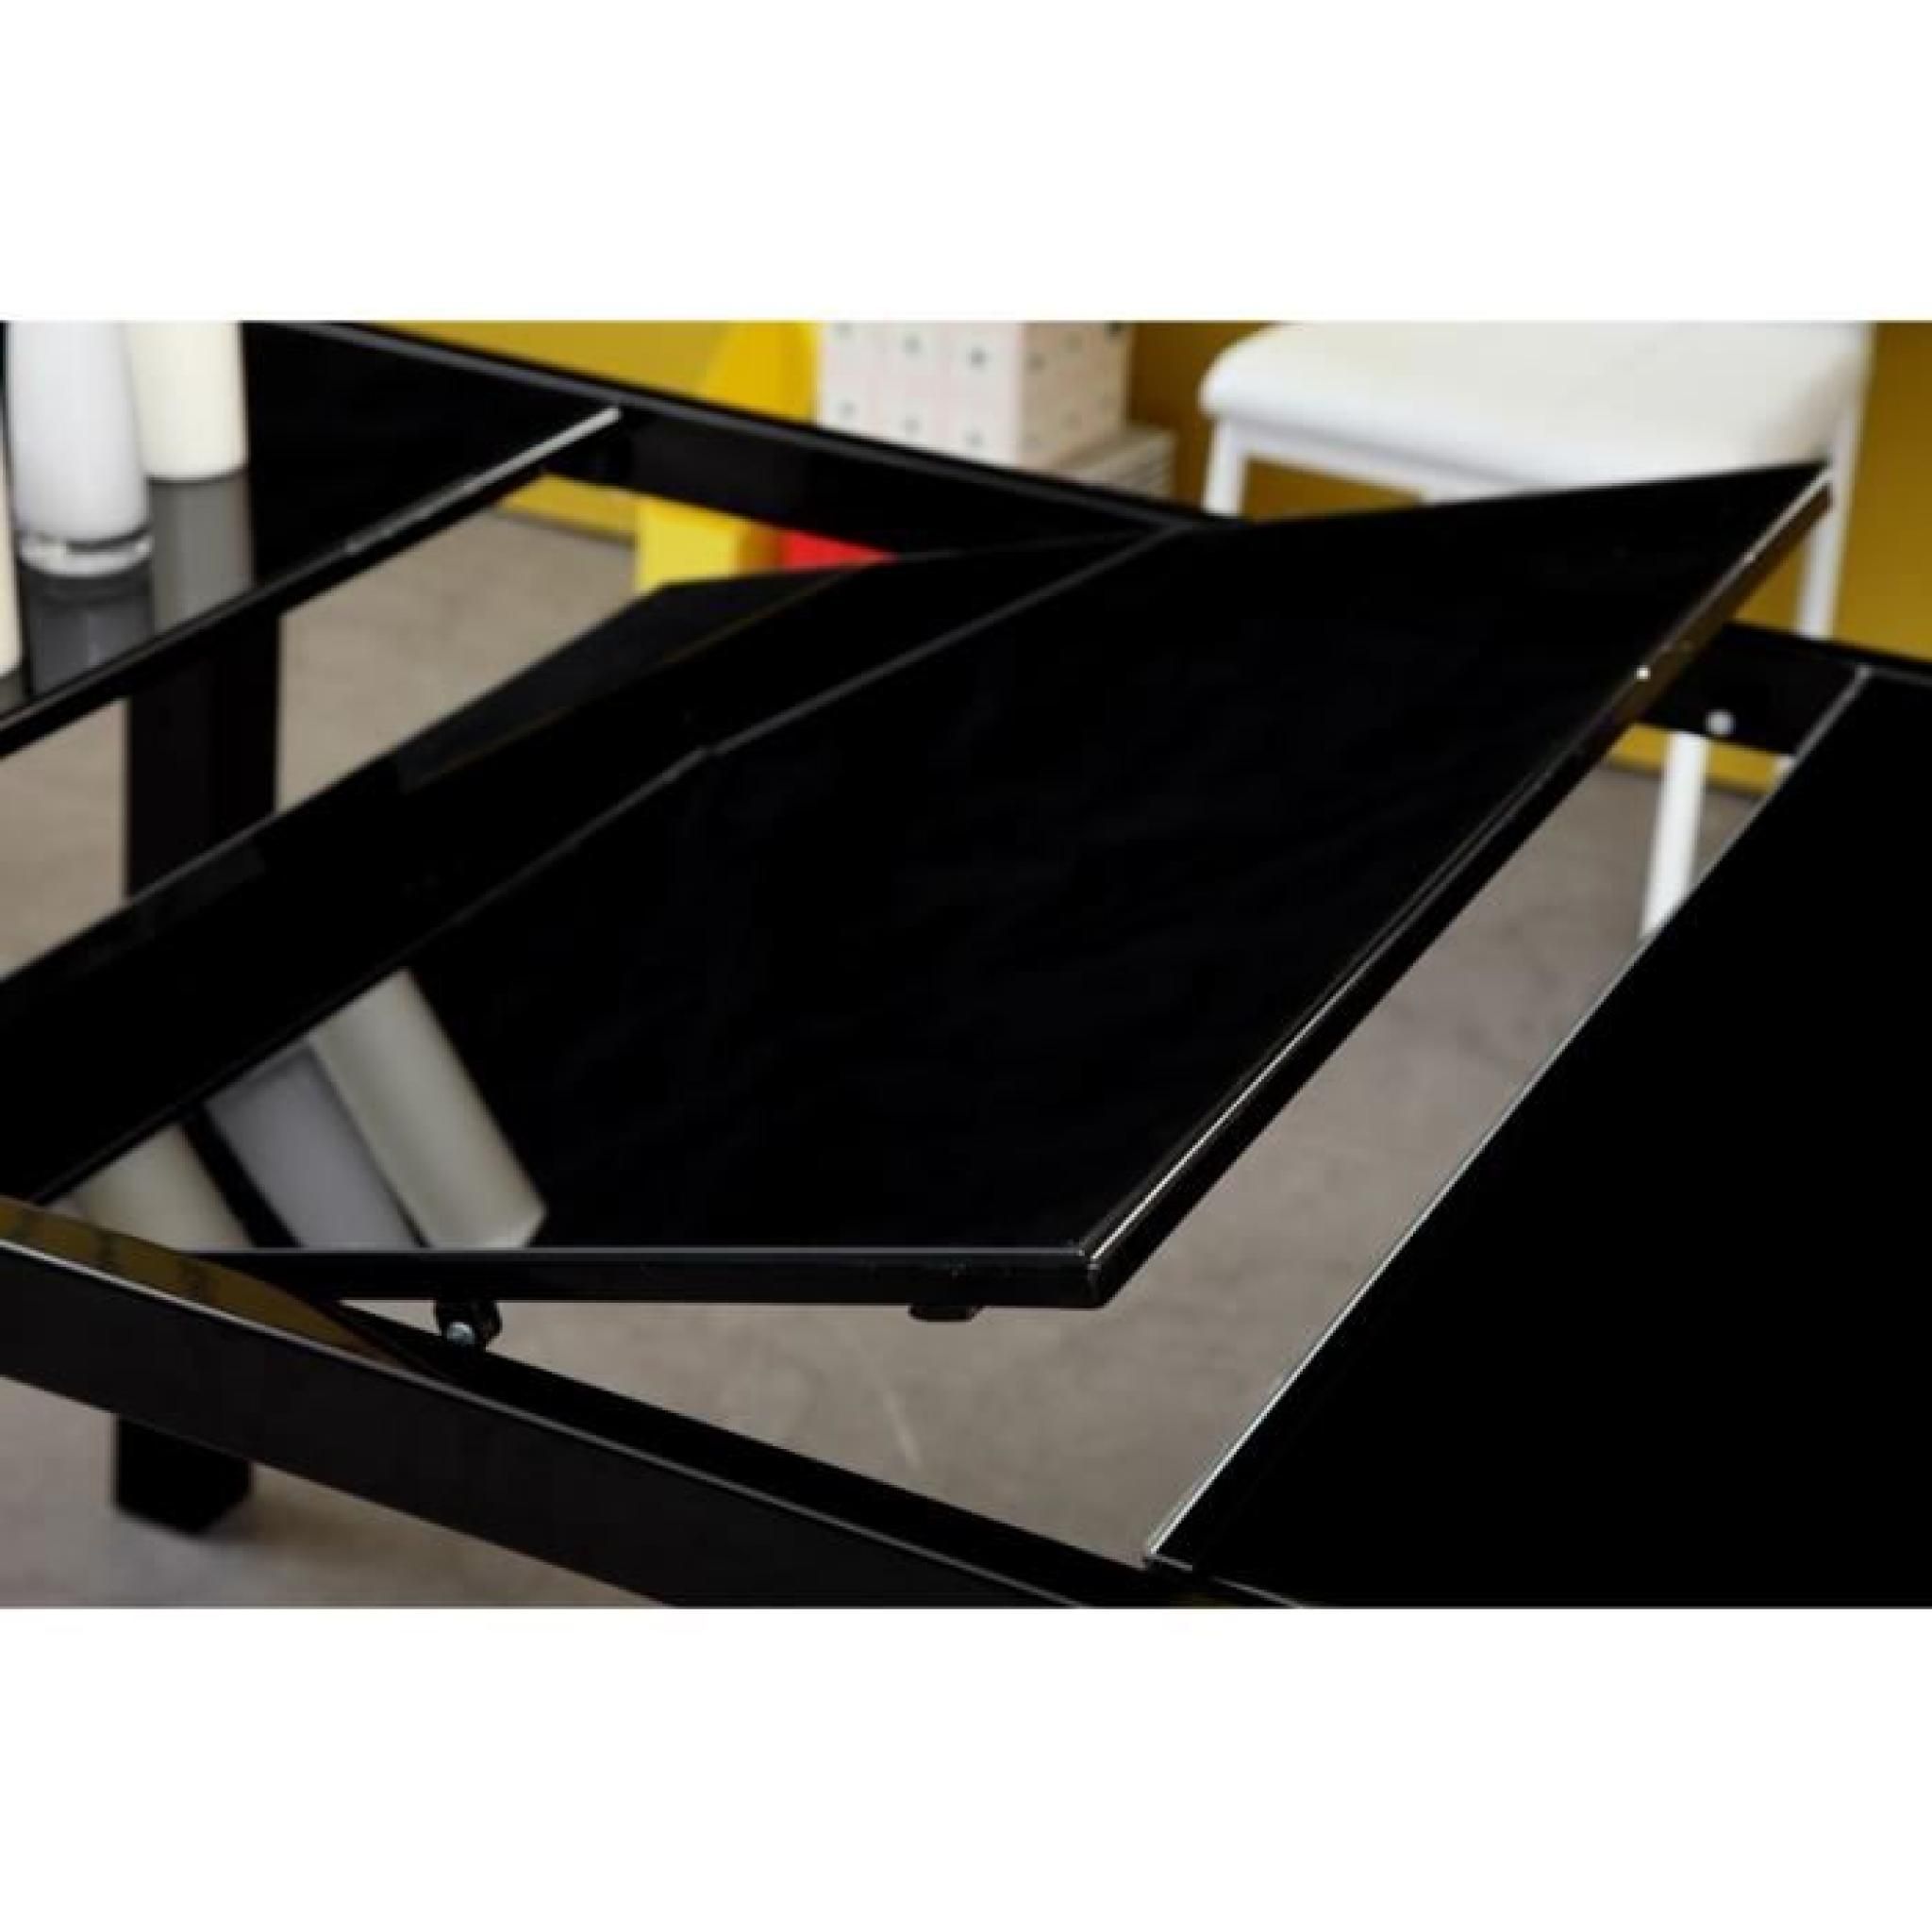 emejing table a manger verre noire images awesome interior home satellite. Black Bedroom Furniture Sets. Home Design Ideas